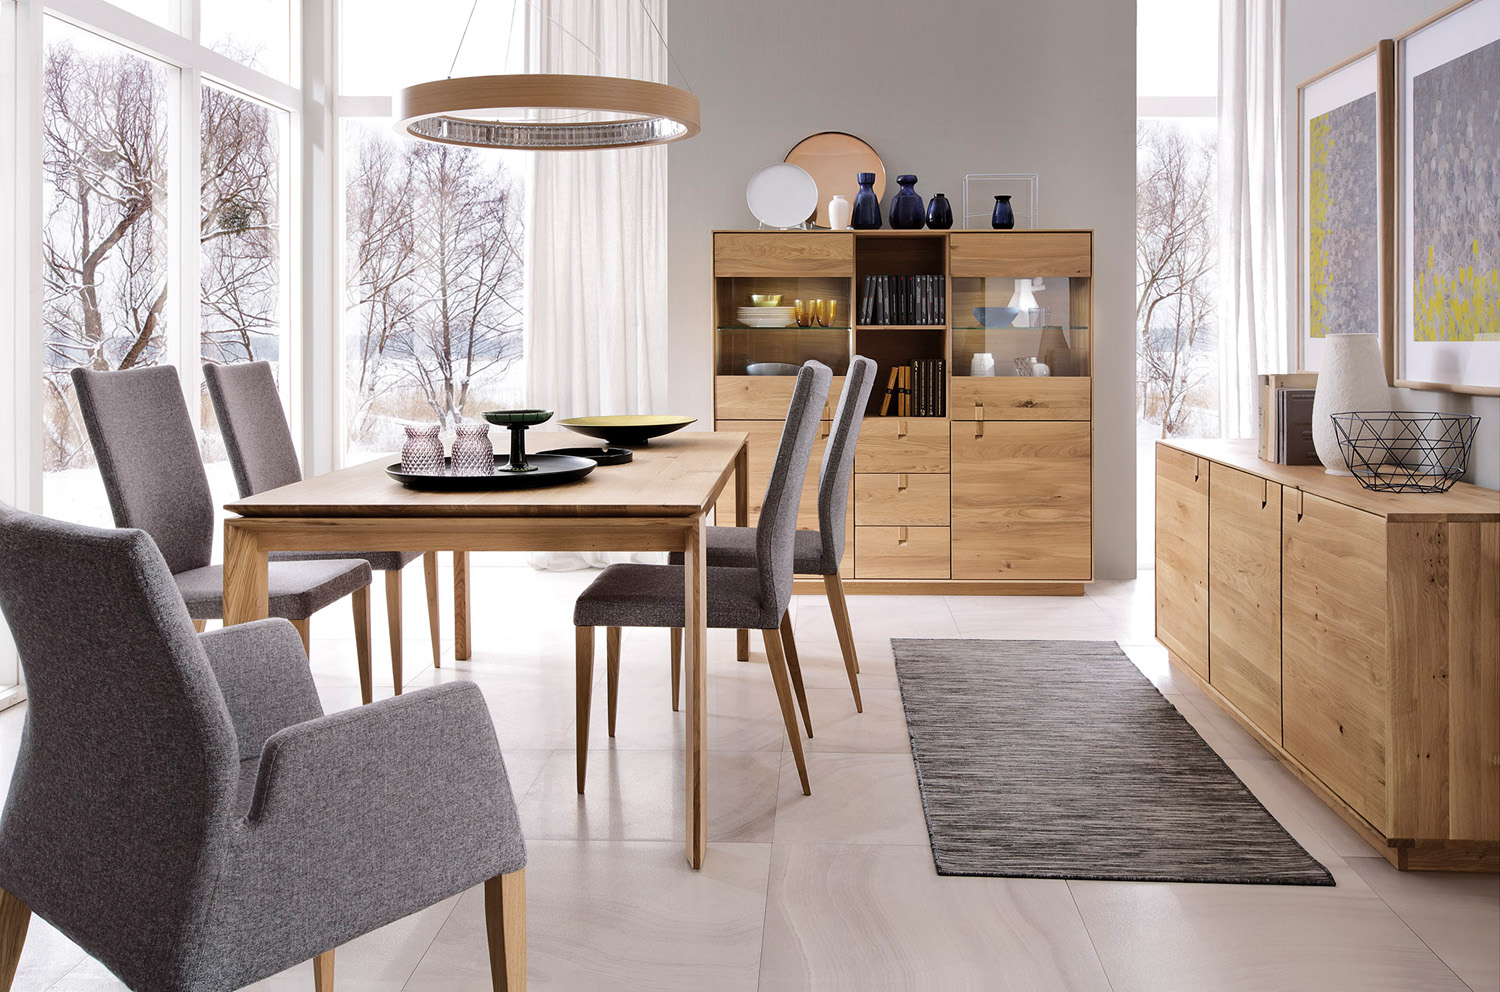 selection home furniture modern design. If You\u0027re Looking For All That Is Best In Home Furnishings, Head N. Sainsbury And Sons On Holburn Street, Where You\u0027ll Find A Superb Selection Of Modern Furniture Design